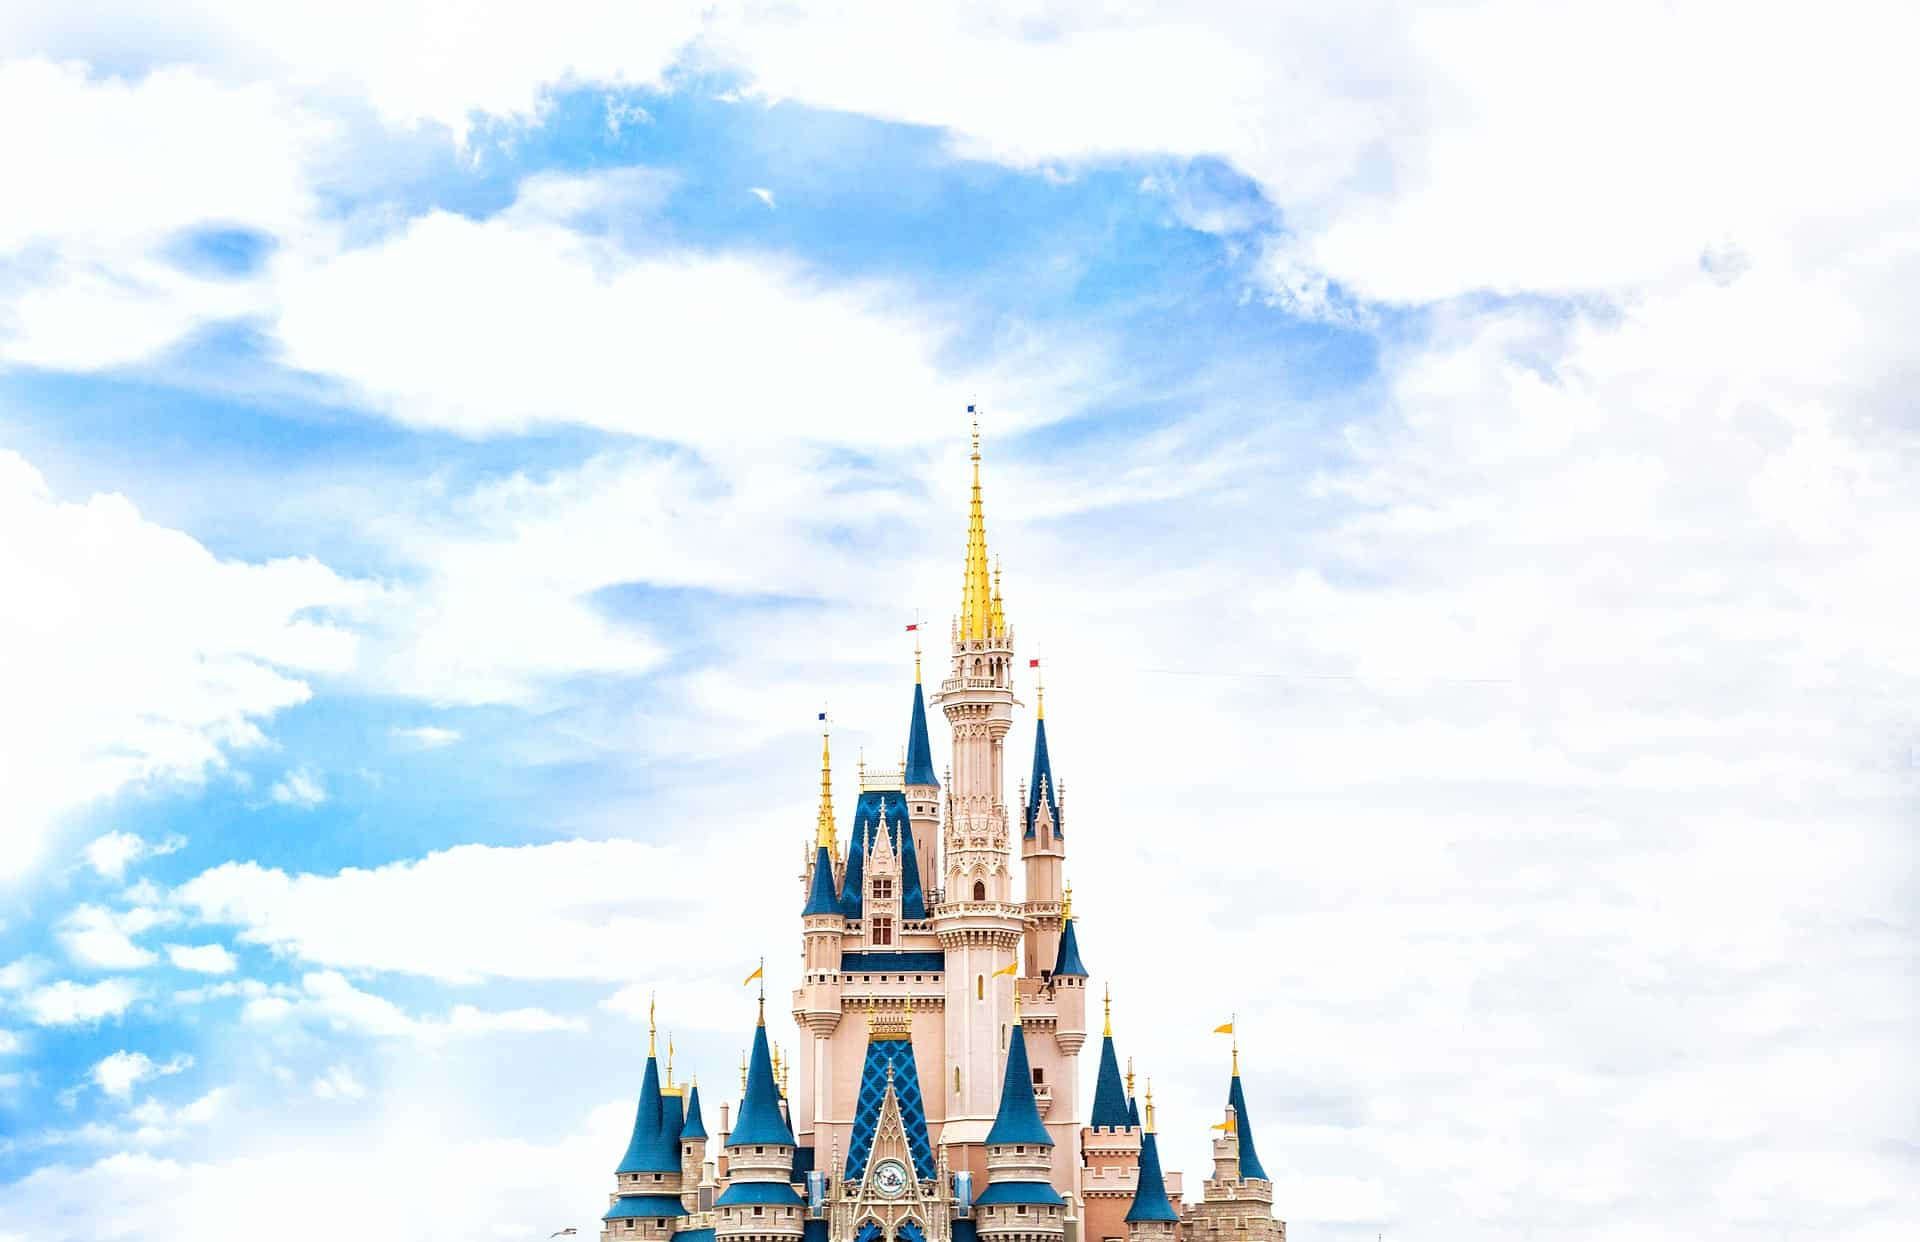 Cinderella castle at Walt Disney World against beautiful cloudy sky